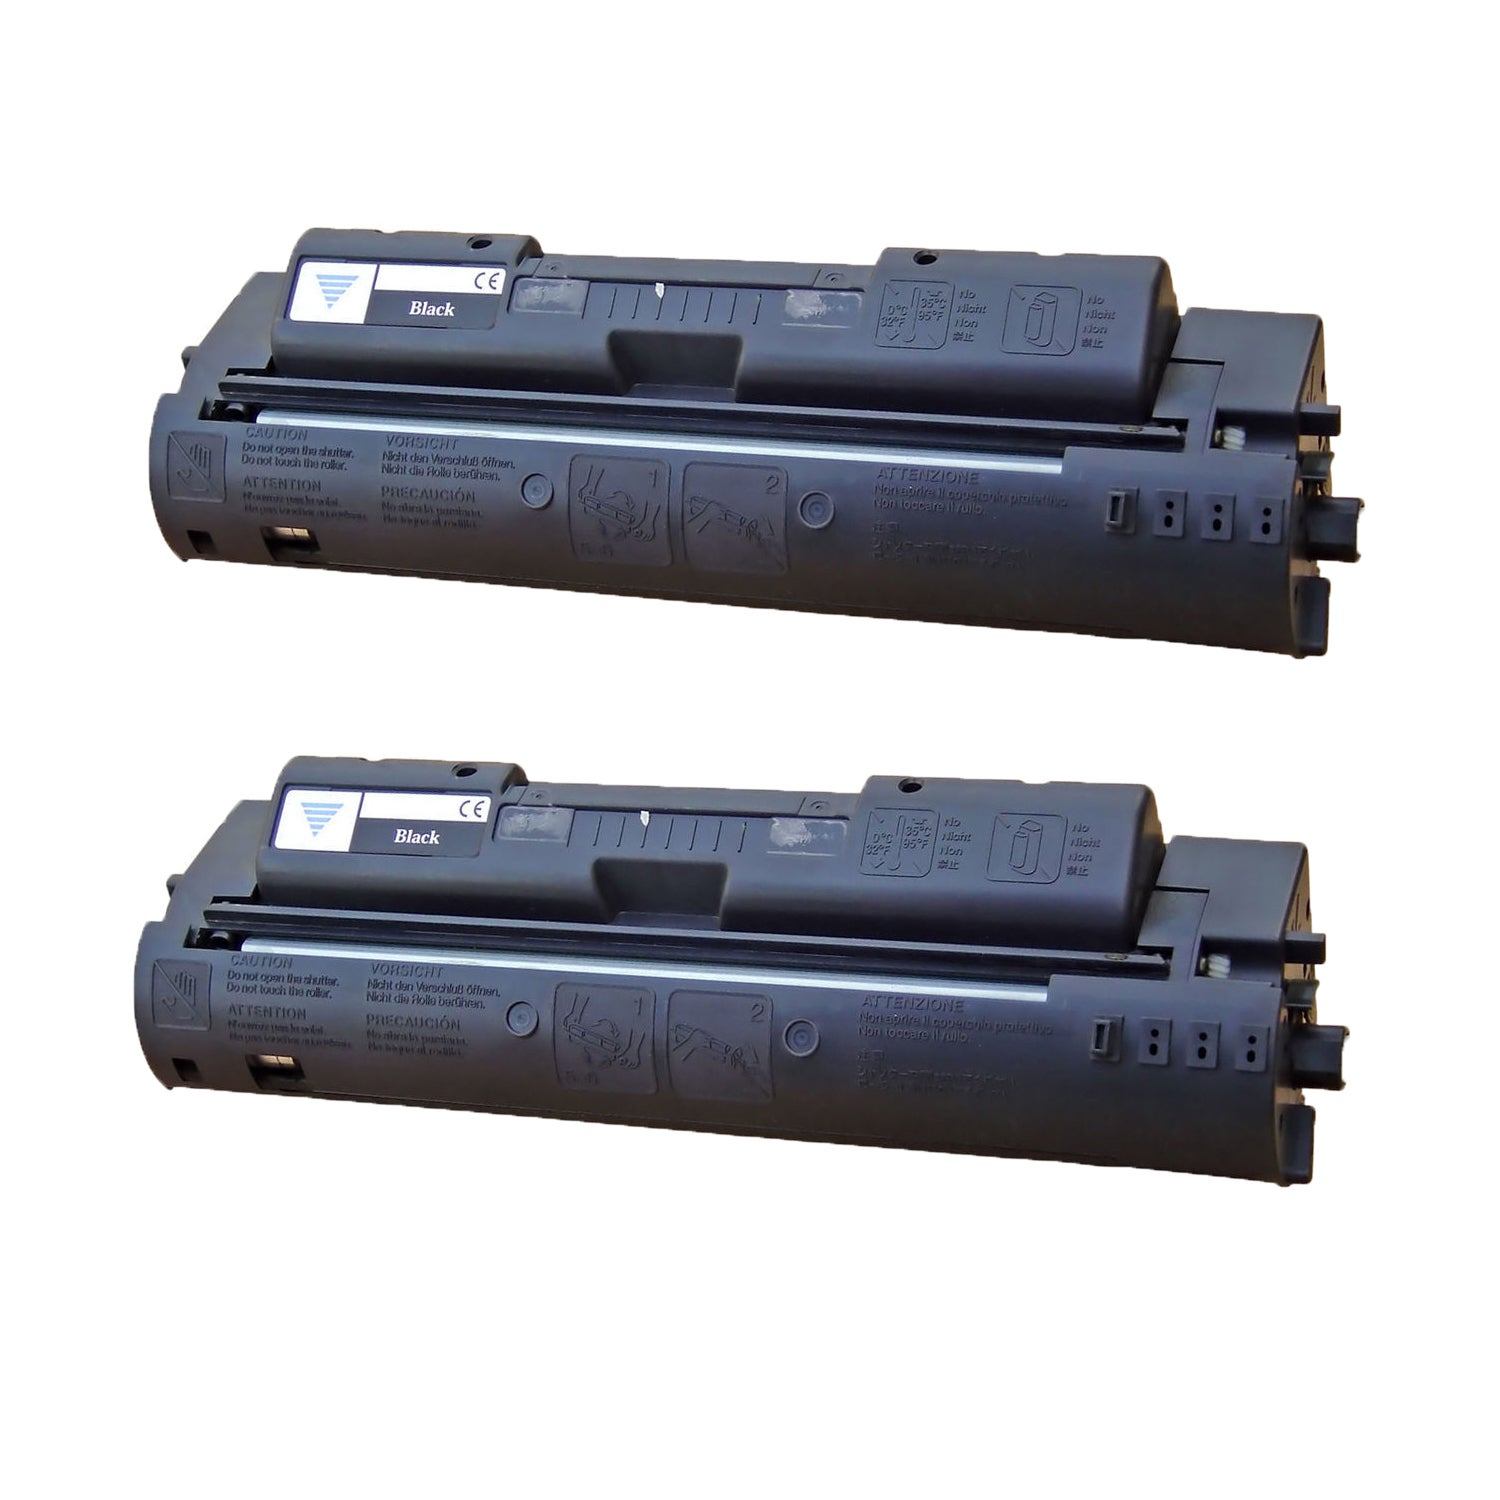 Shop Xerox Black Toner Cartridge For Hp Laserjet 5si Remanufactured Compatible 83a Cf283a Mfp M125 M127fn On Sale Ships To Canada 11080014